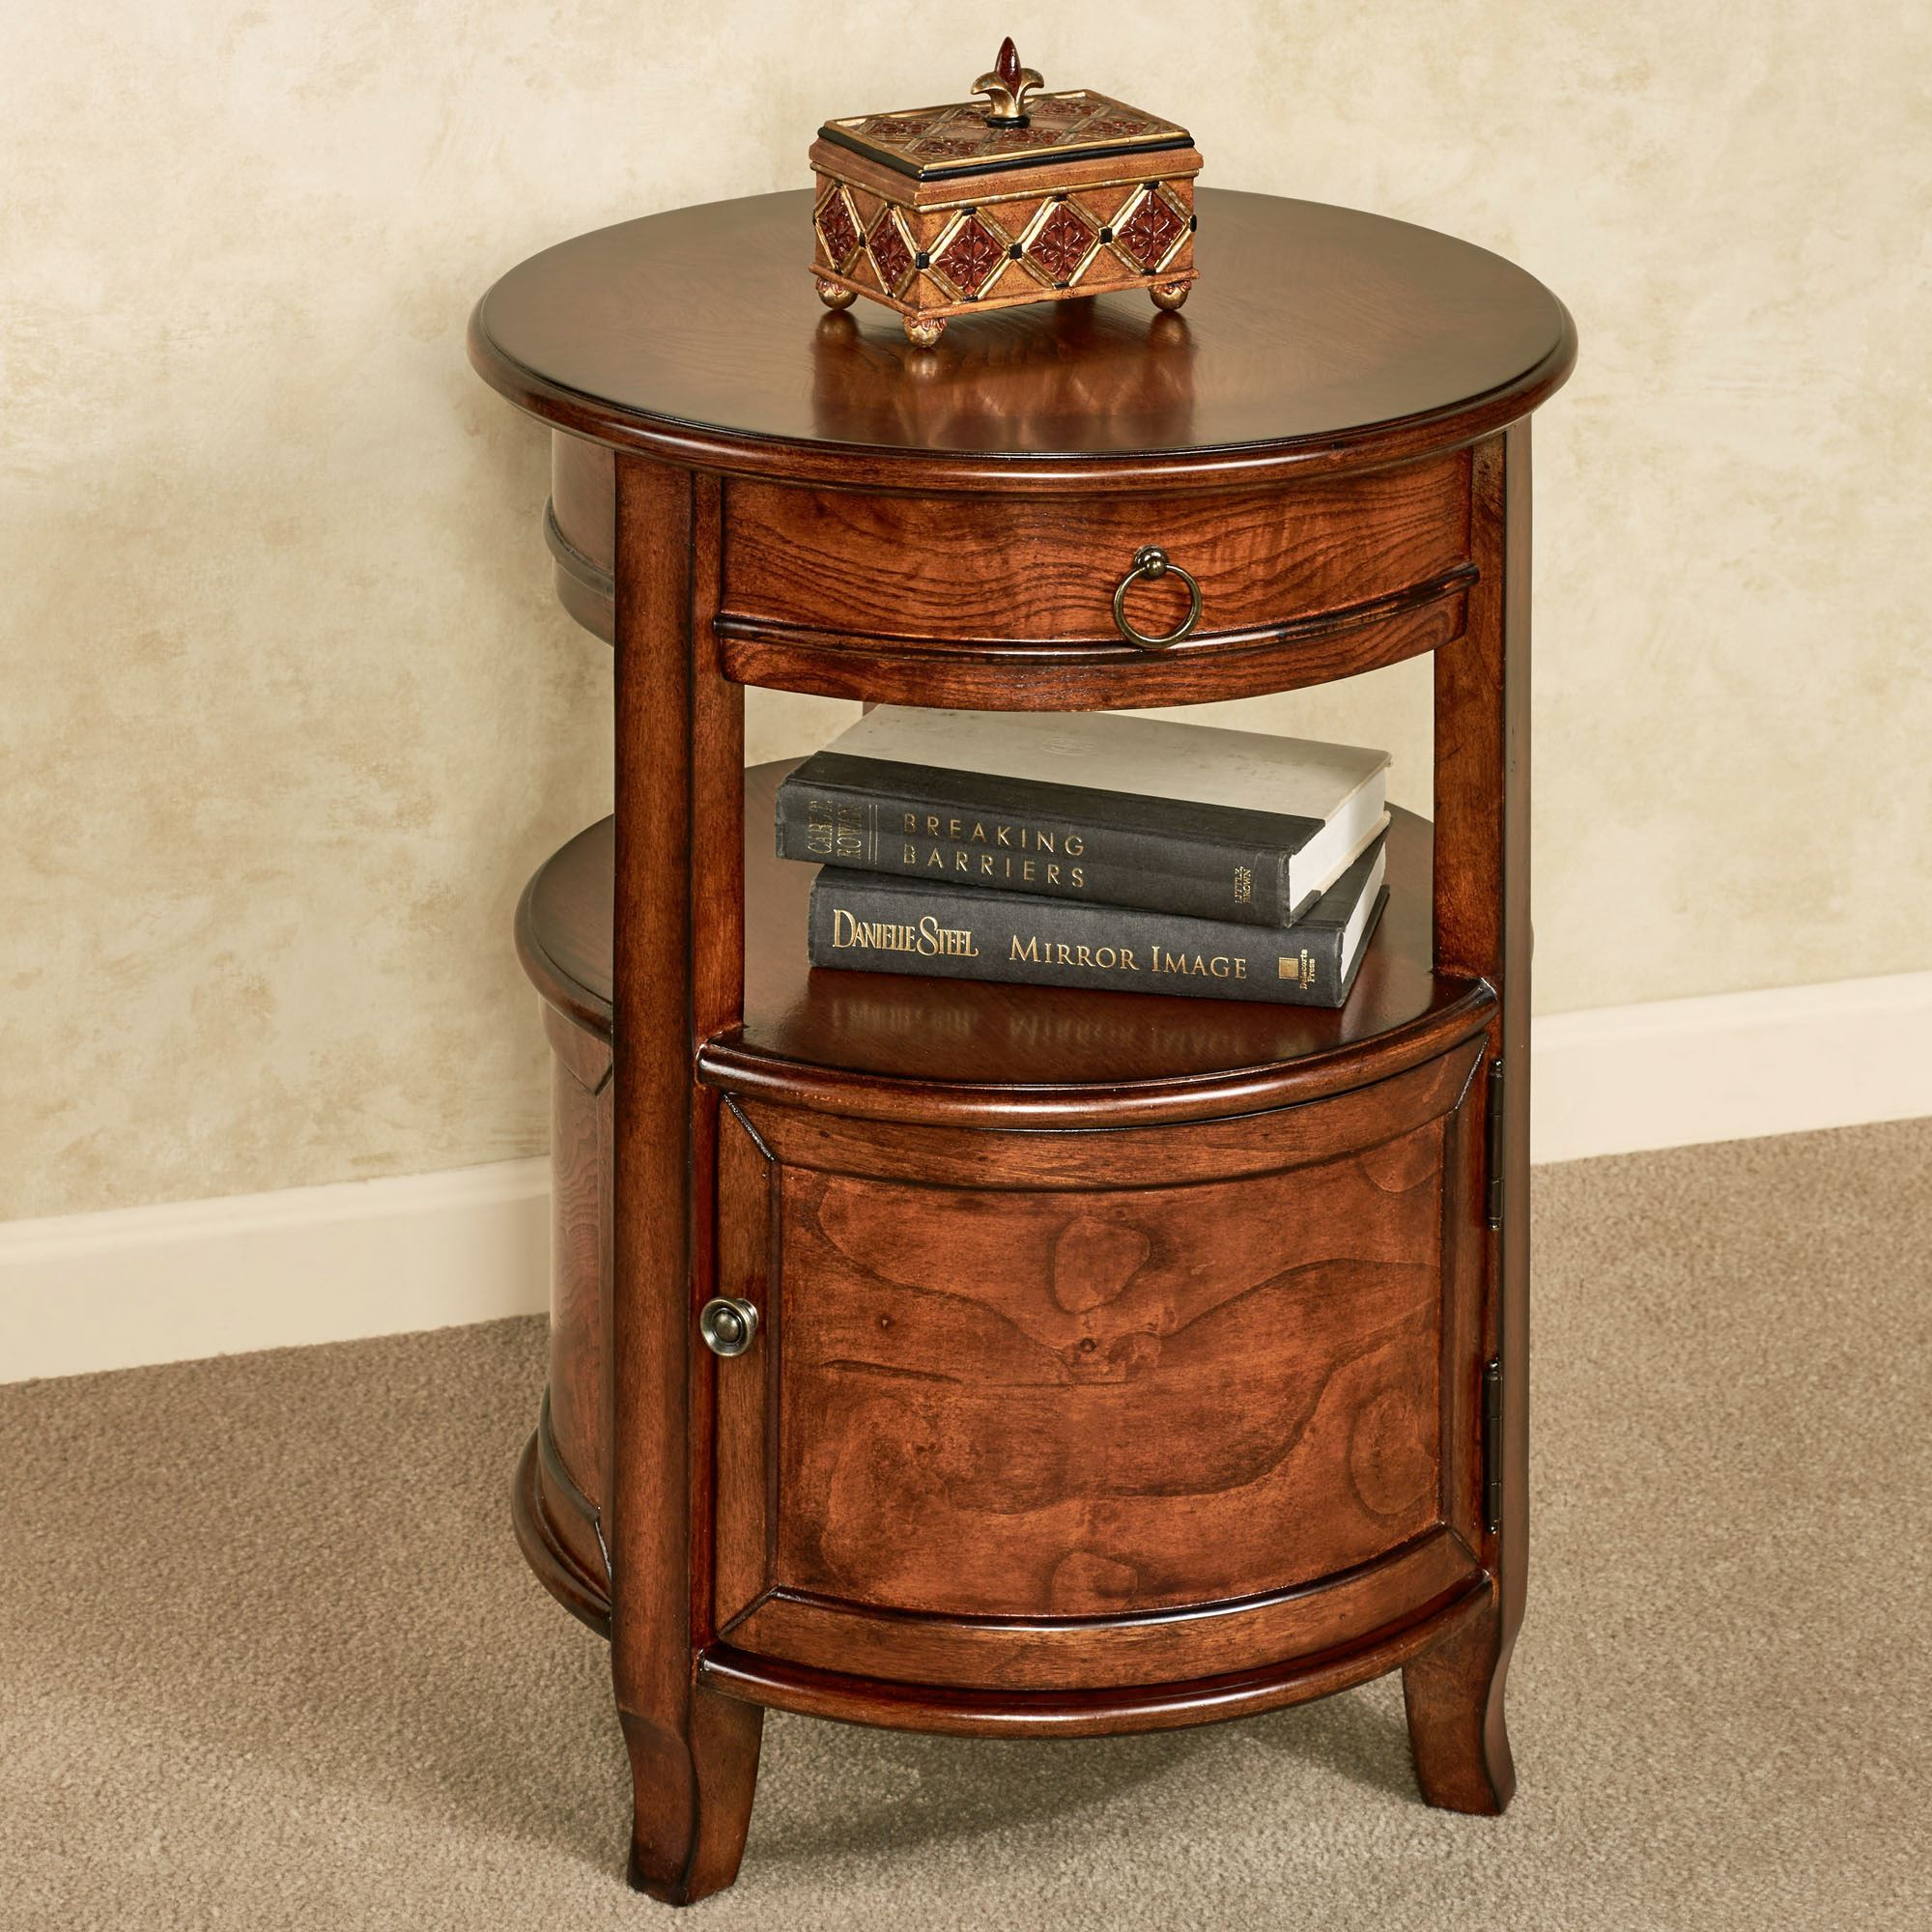 accent tables side living room round for with shelf corner entry table black metal circle end small decorative bedside dark brown rustic coffee and drawer full size best laptop